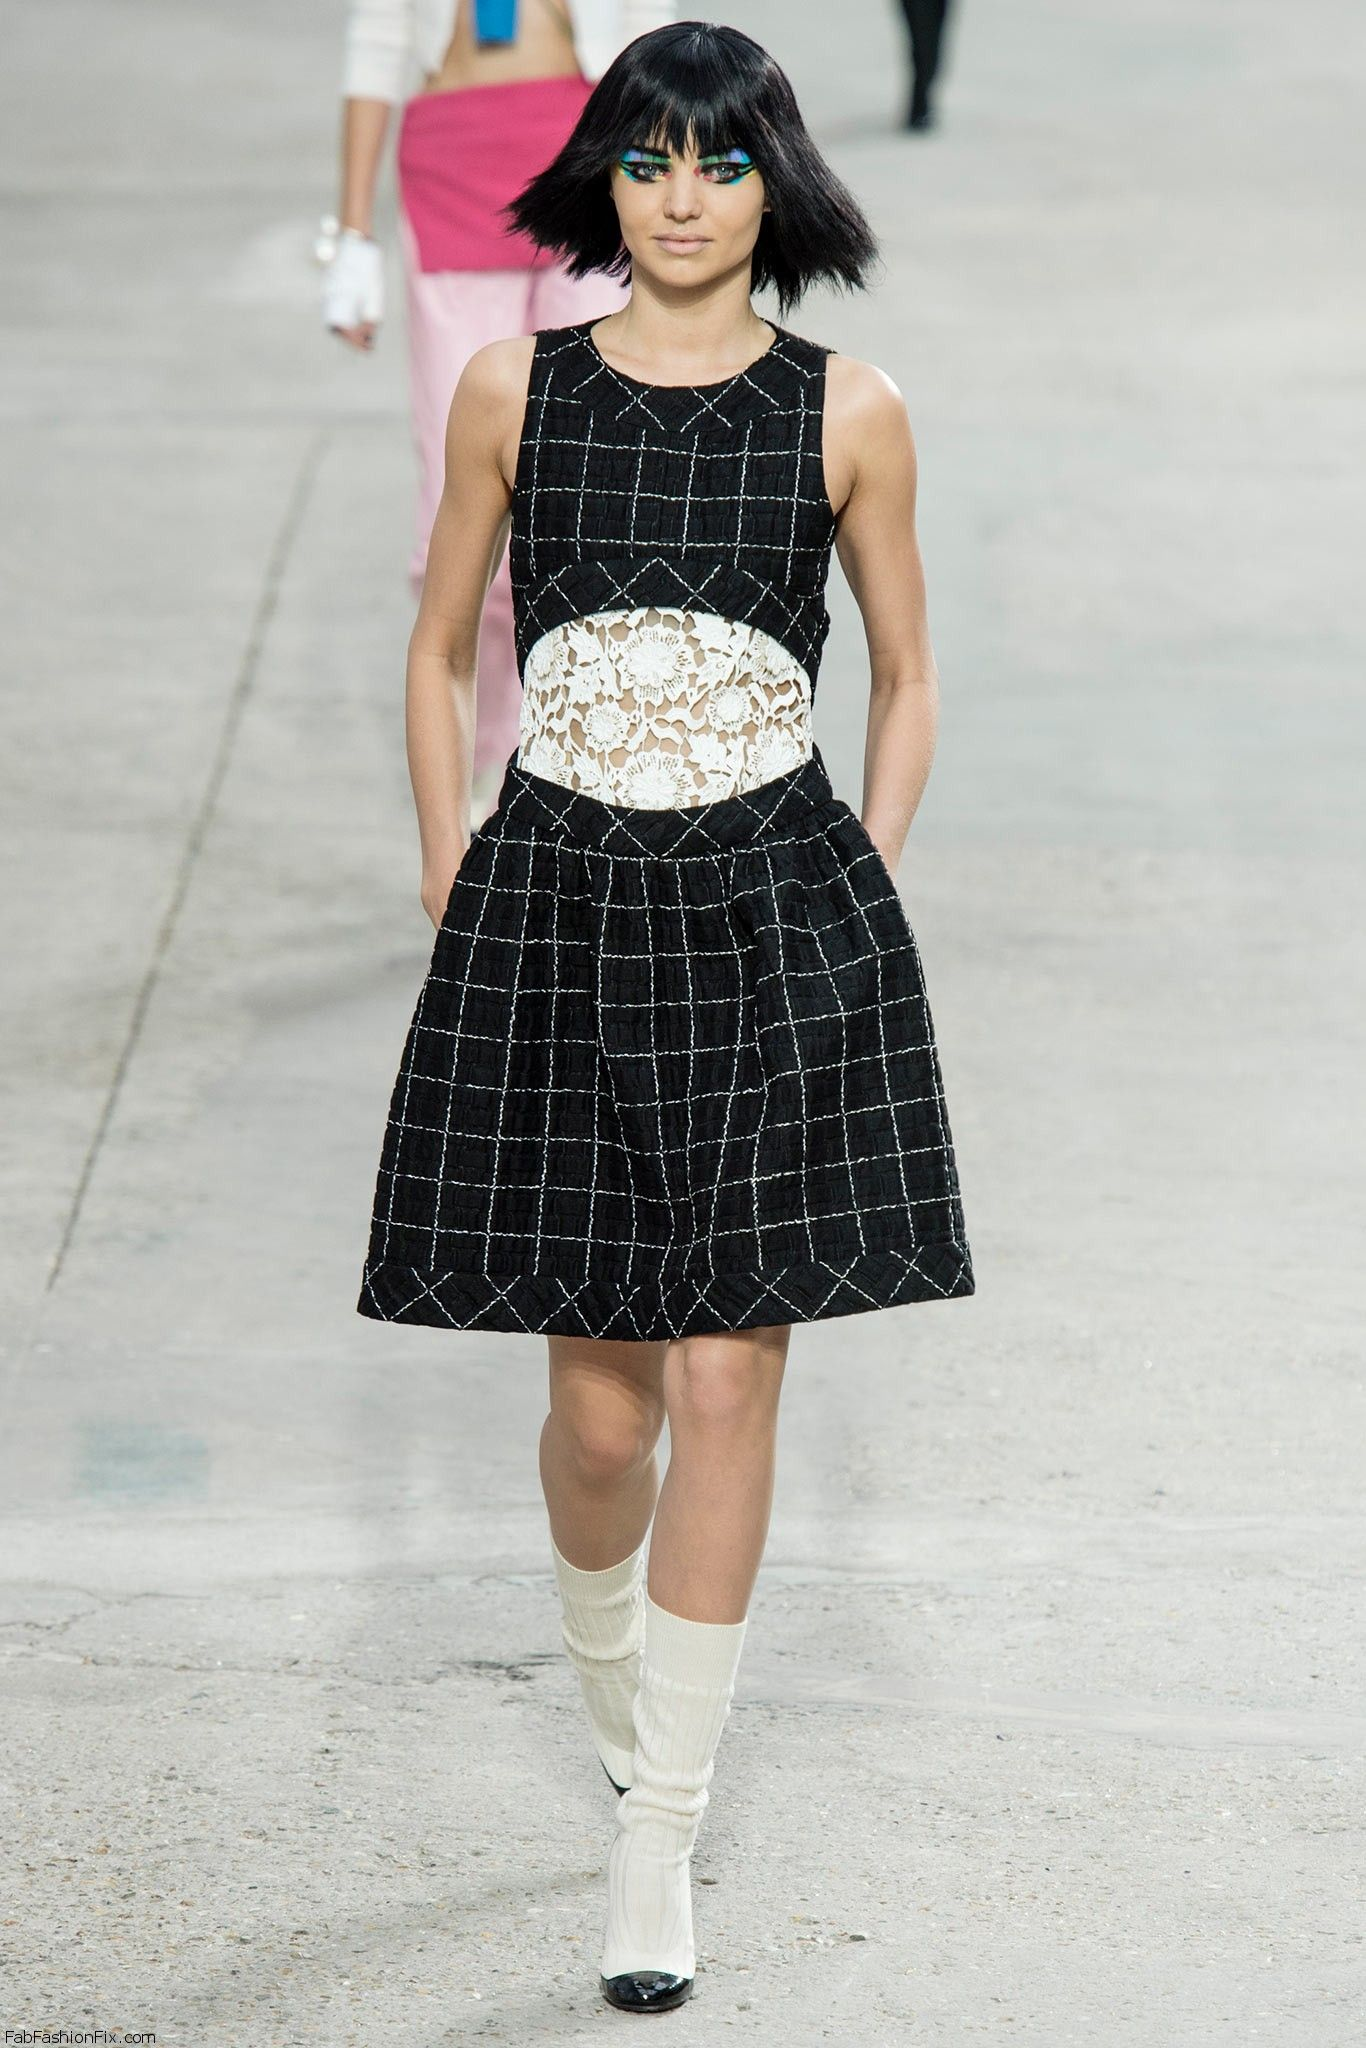 chanel springsummer 2014 paris fashion week fab